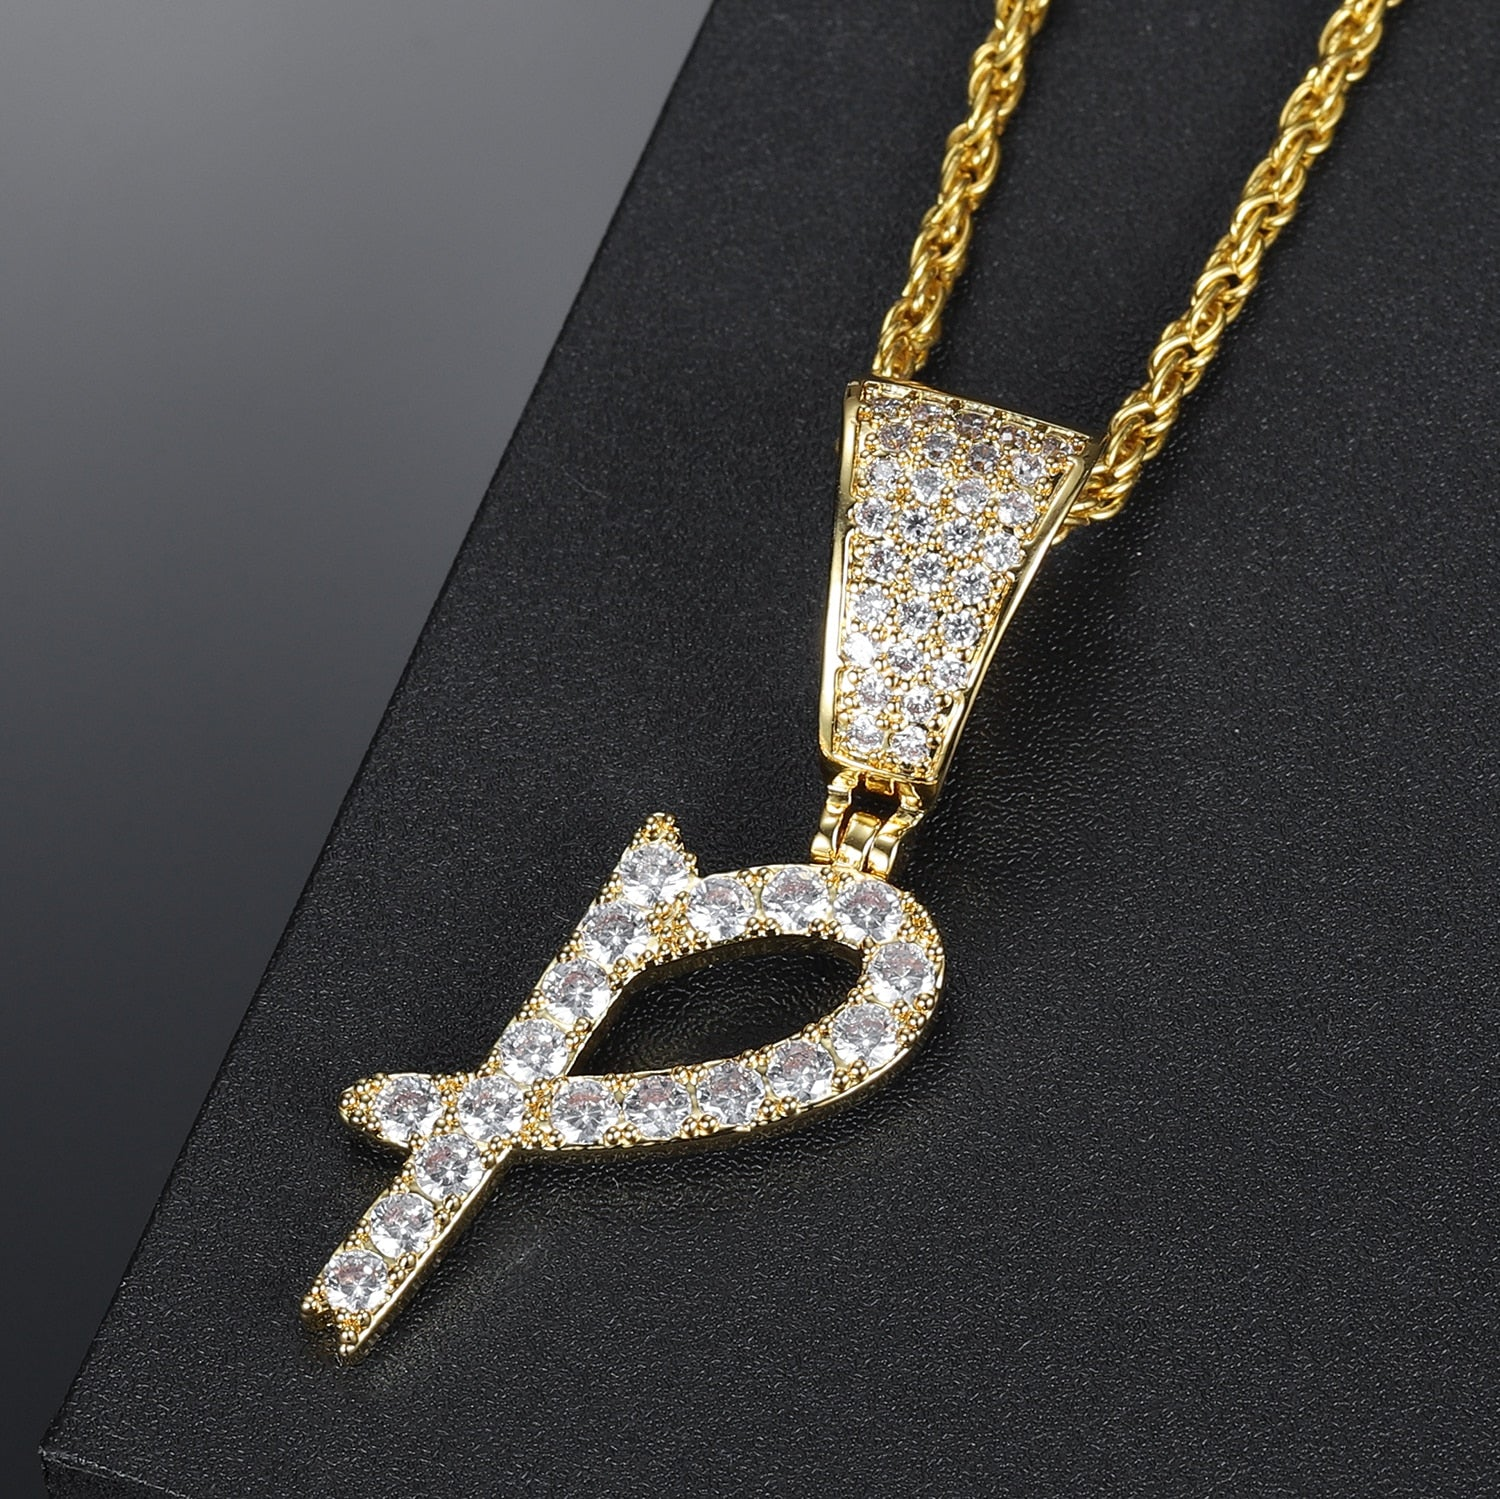 Iced A-Z Initial Necklace